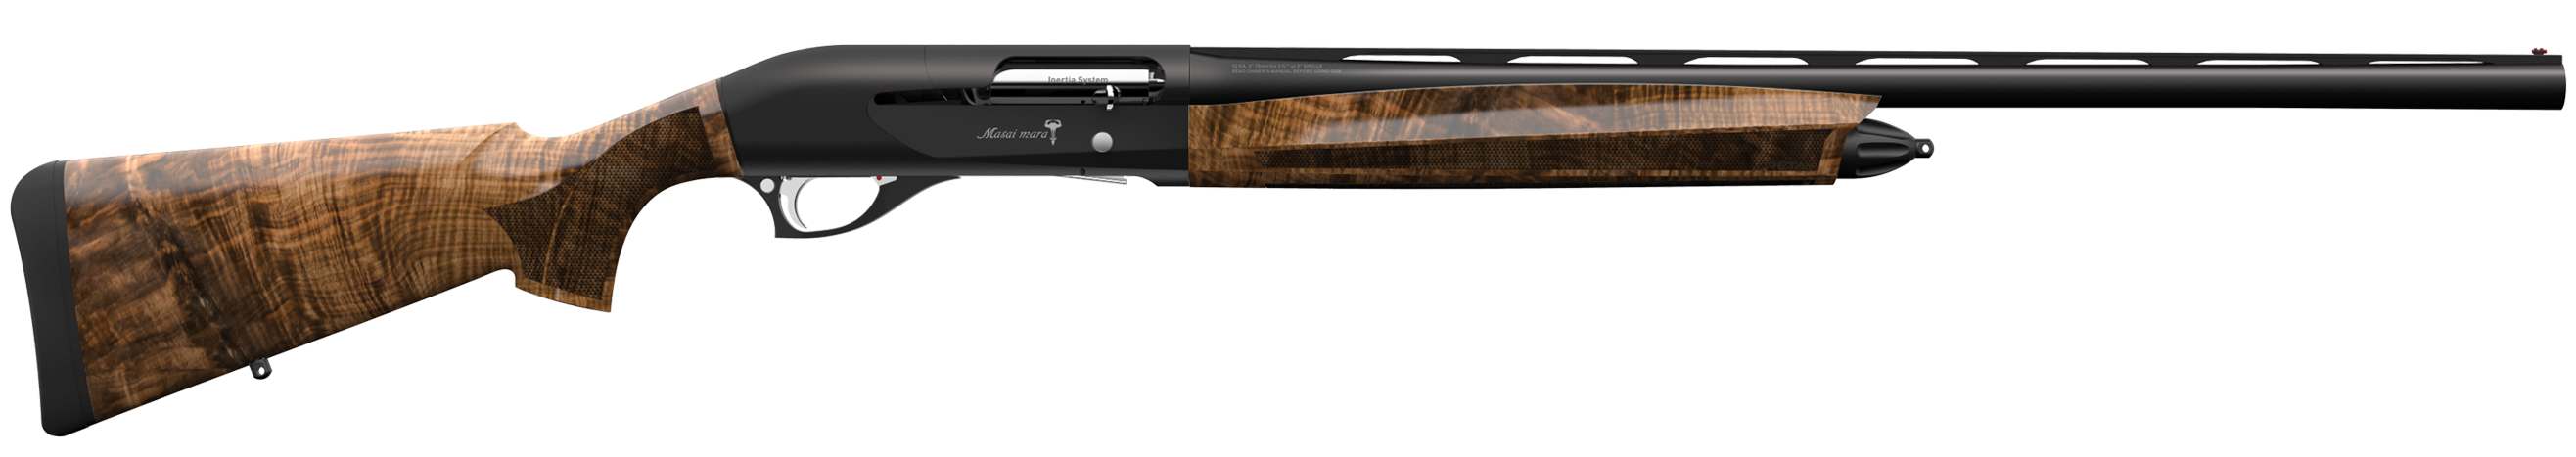 Retay Masai Mara Semi-Auto 3'' 12 Gauge 26'' Blued High Polish - Turkish Walnut